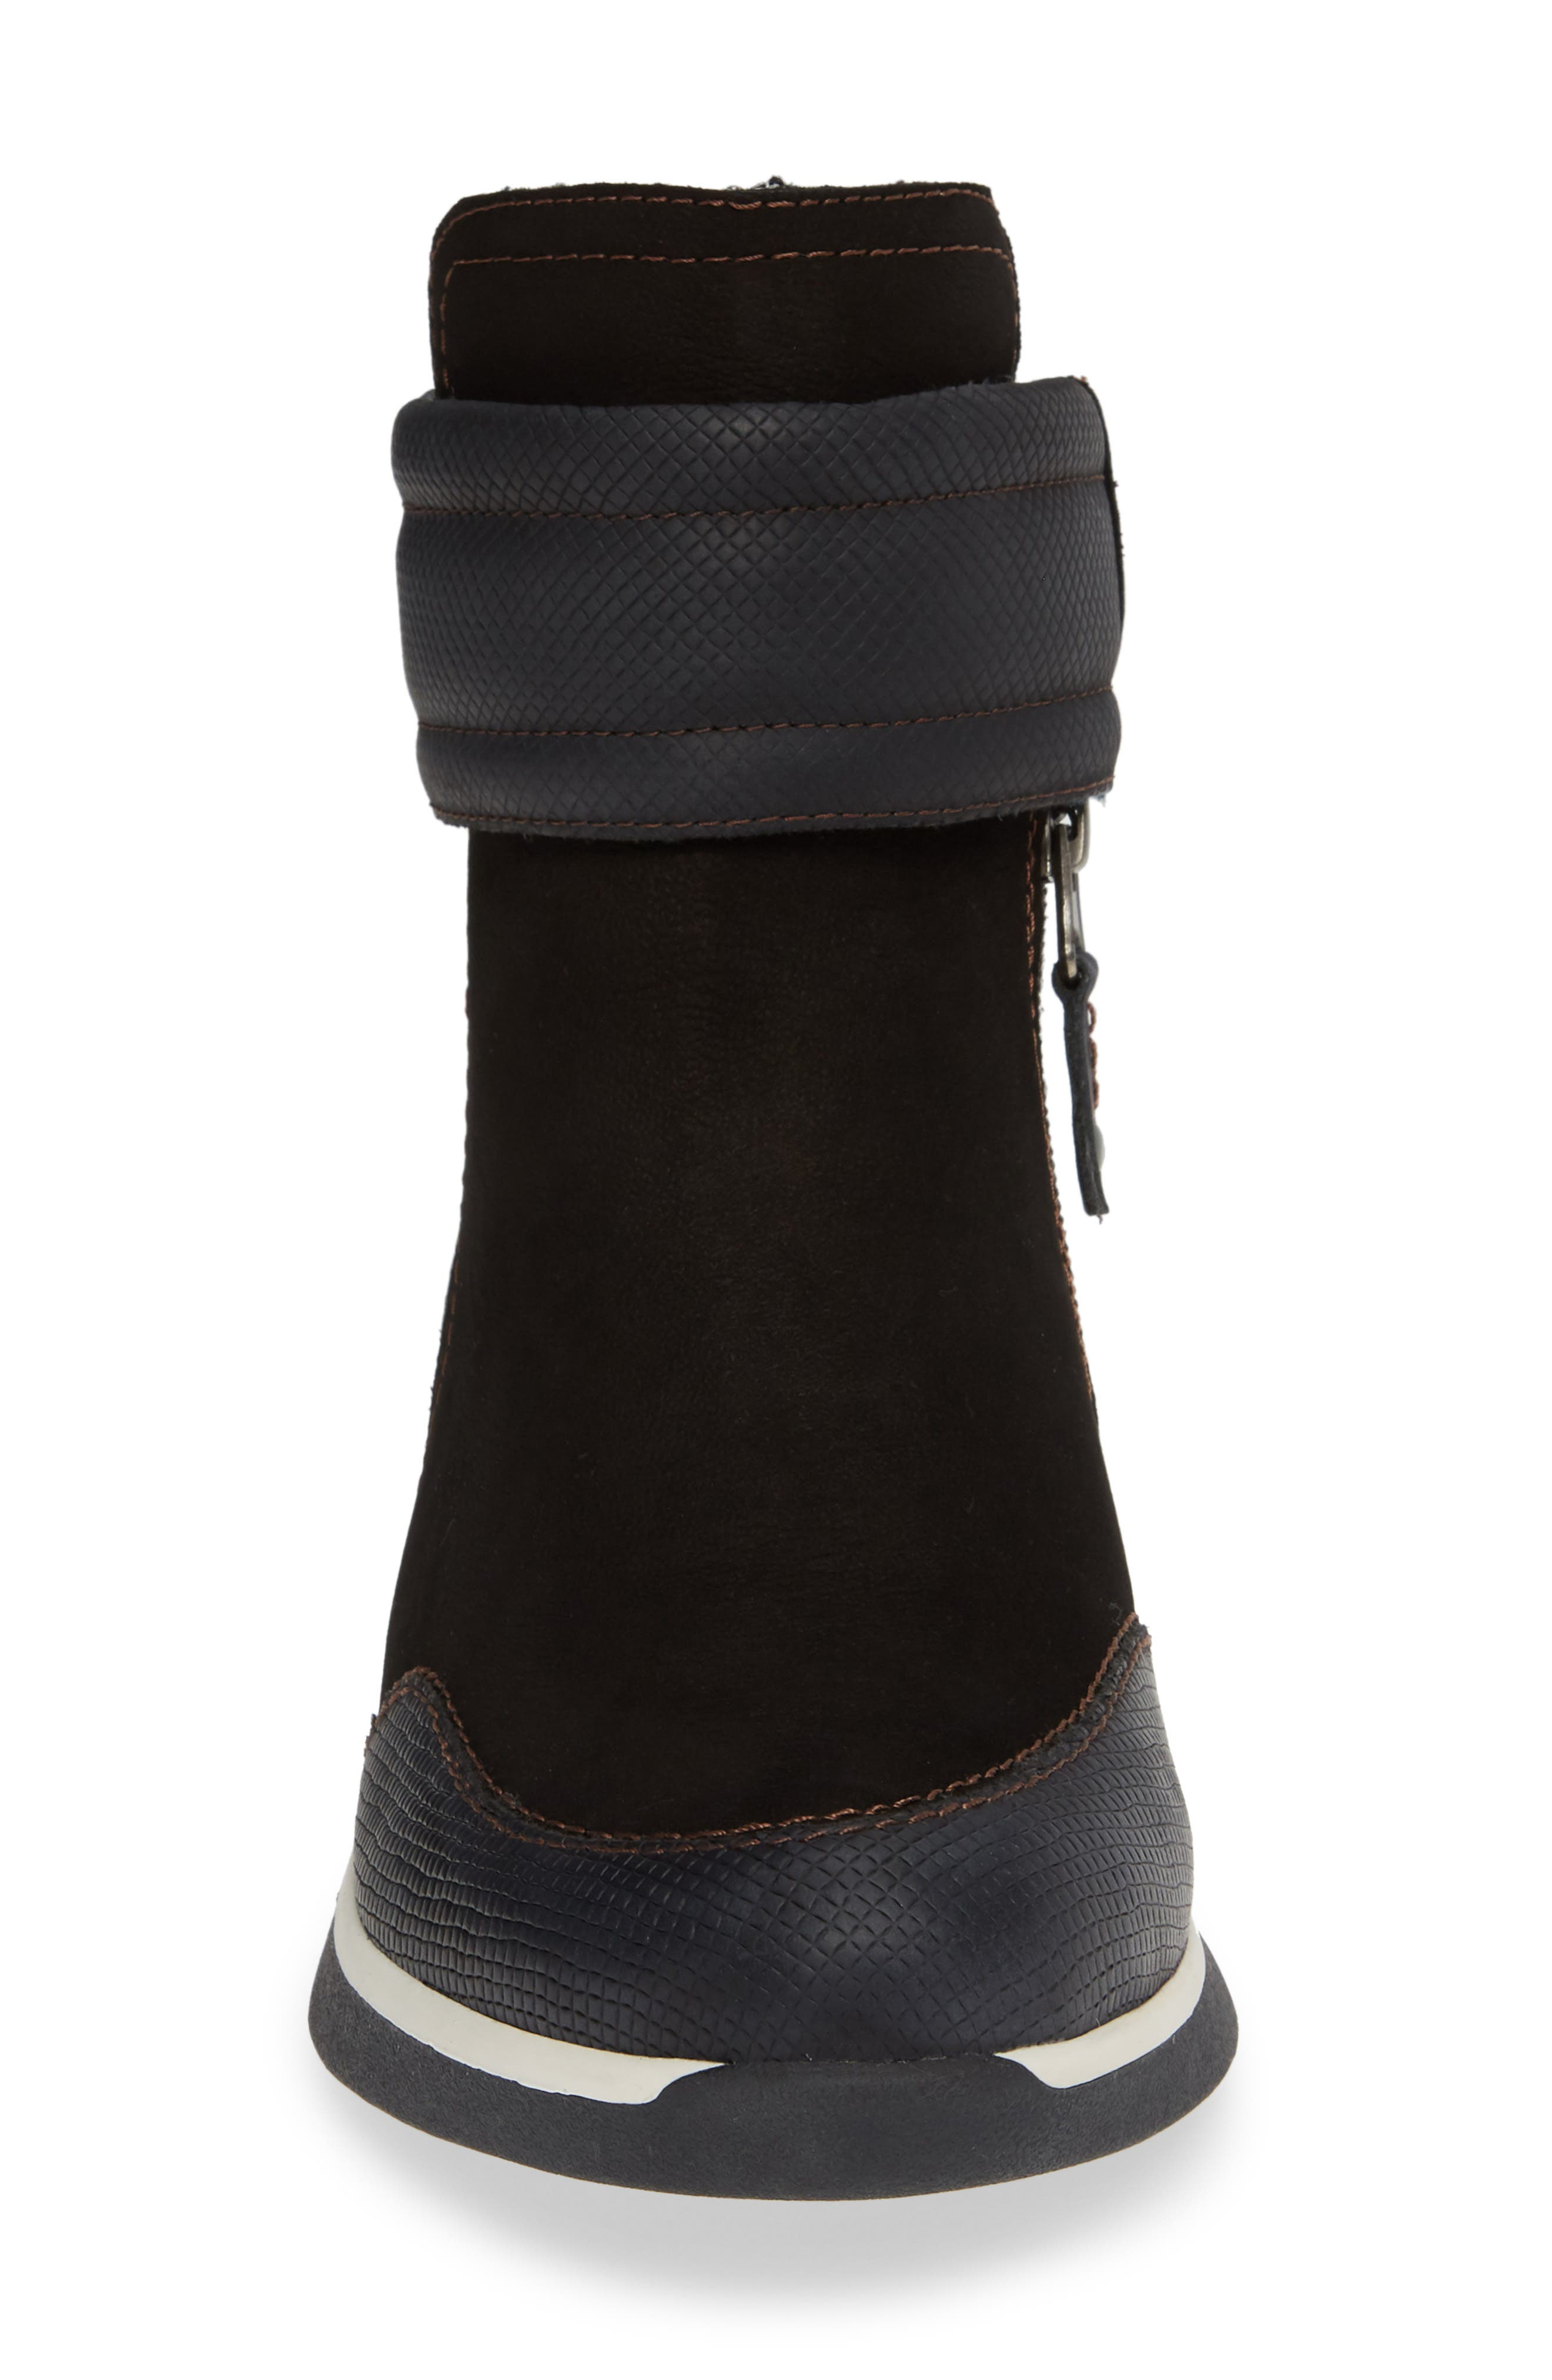 Outing Bootie,                             Alternate thumbnail 4, color,                             BLACK LEATHER